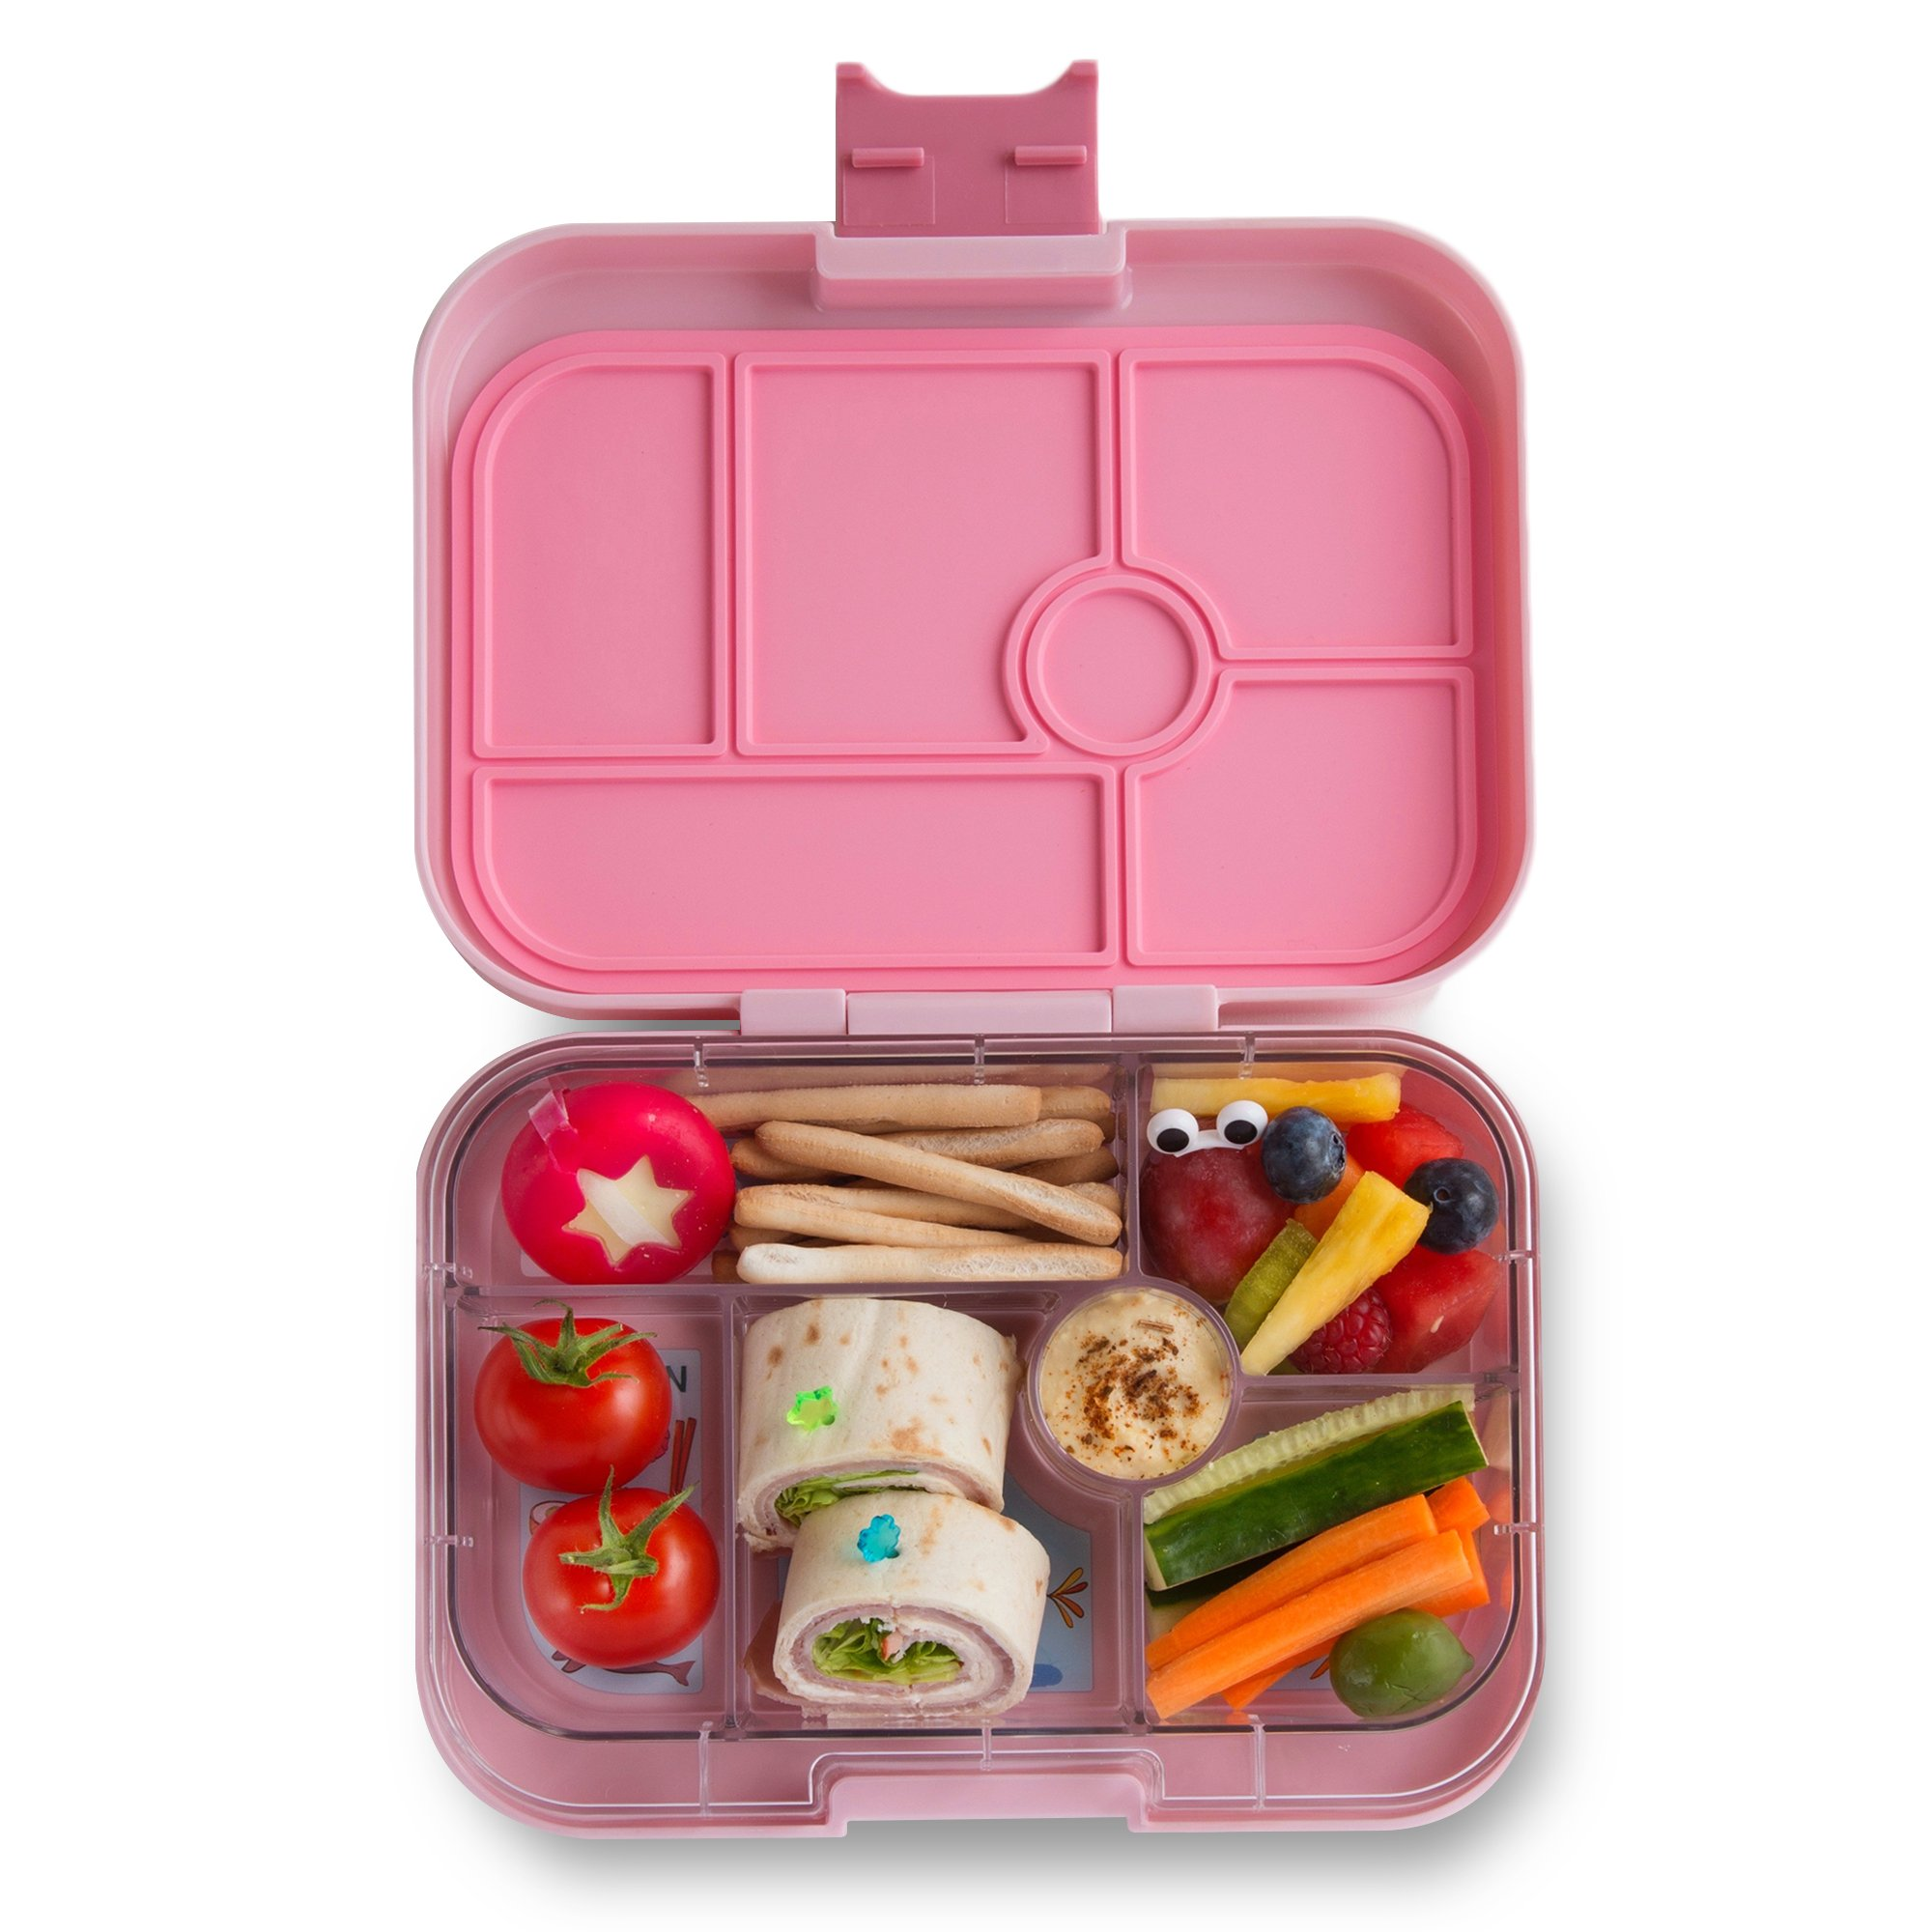 YUMBOX Original (Hollywood Pink) Leakproof Bento Lunch Box Container for Kids: Bento-style lunch box offers Durable, Leak-proof, On-the-go Meal and Snack Packing